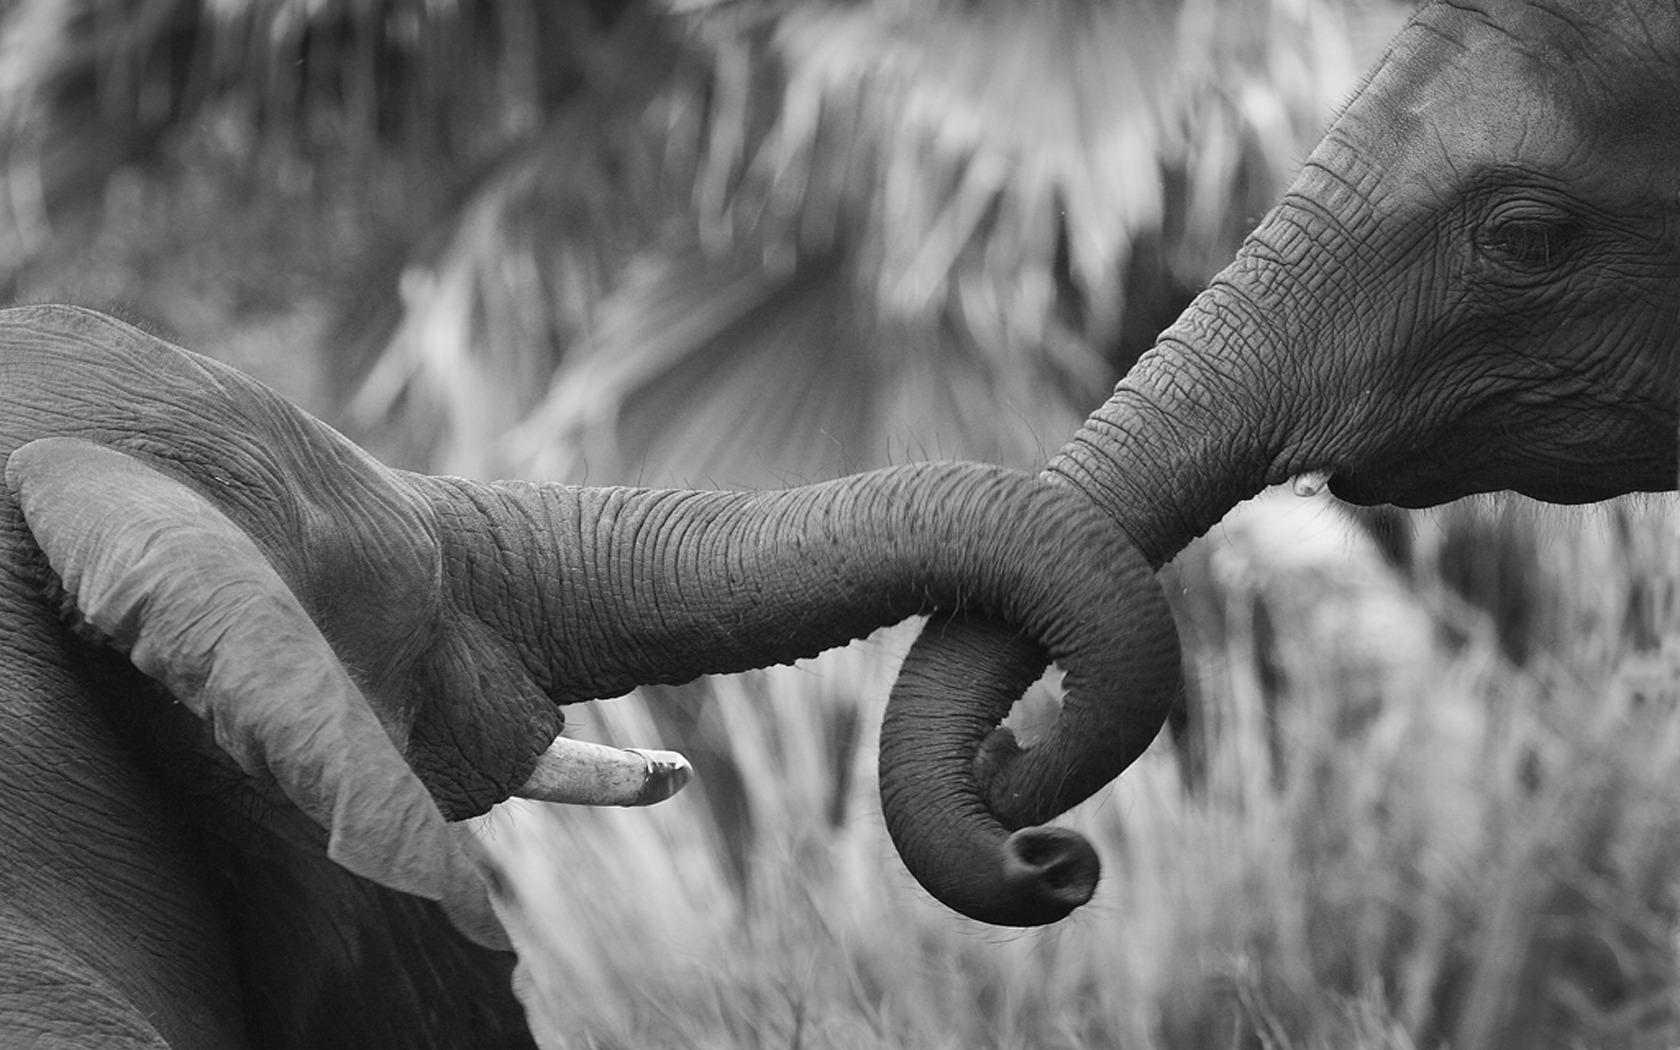 elephant wallpaper for ipad images